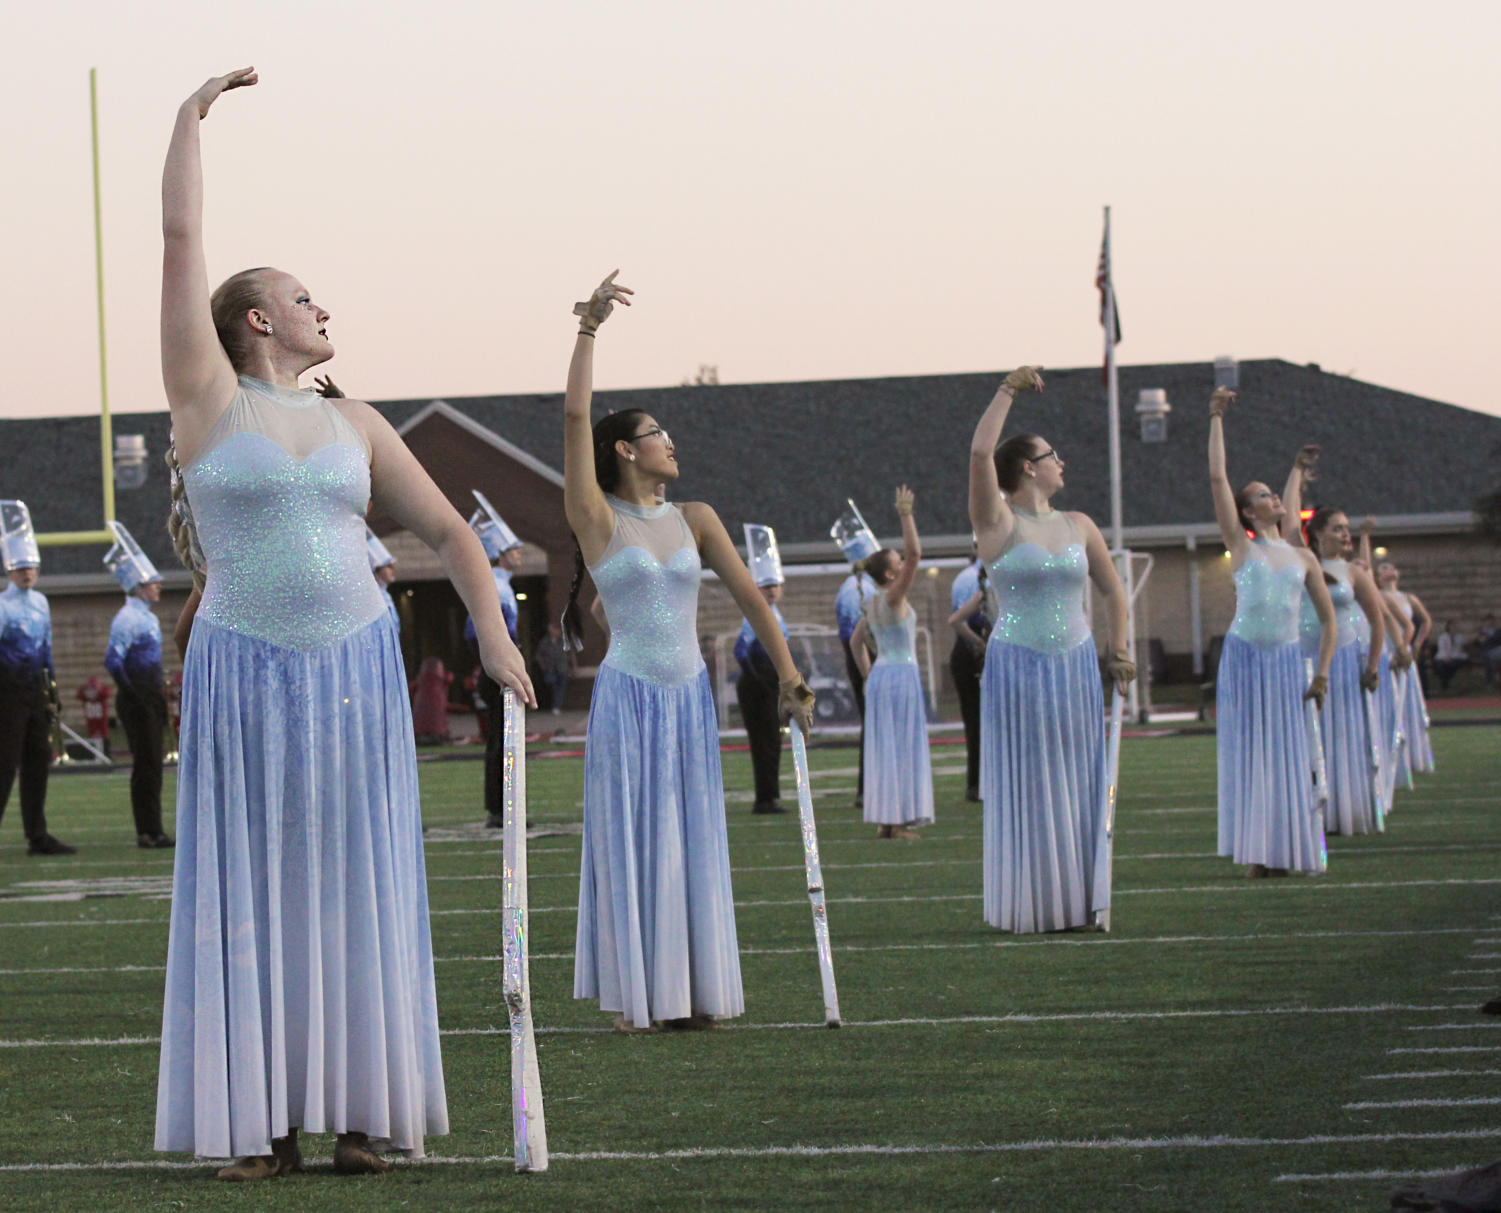 Colorguard+dancers+pose+at+the+end+of+their+performance.